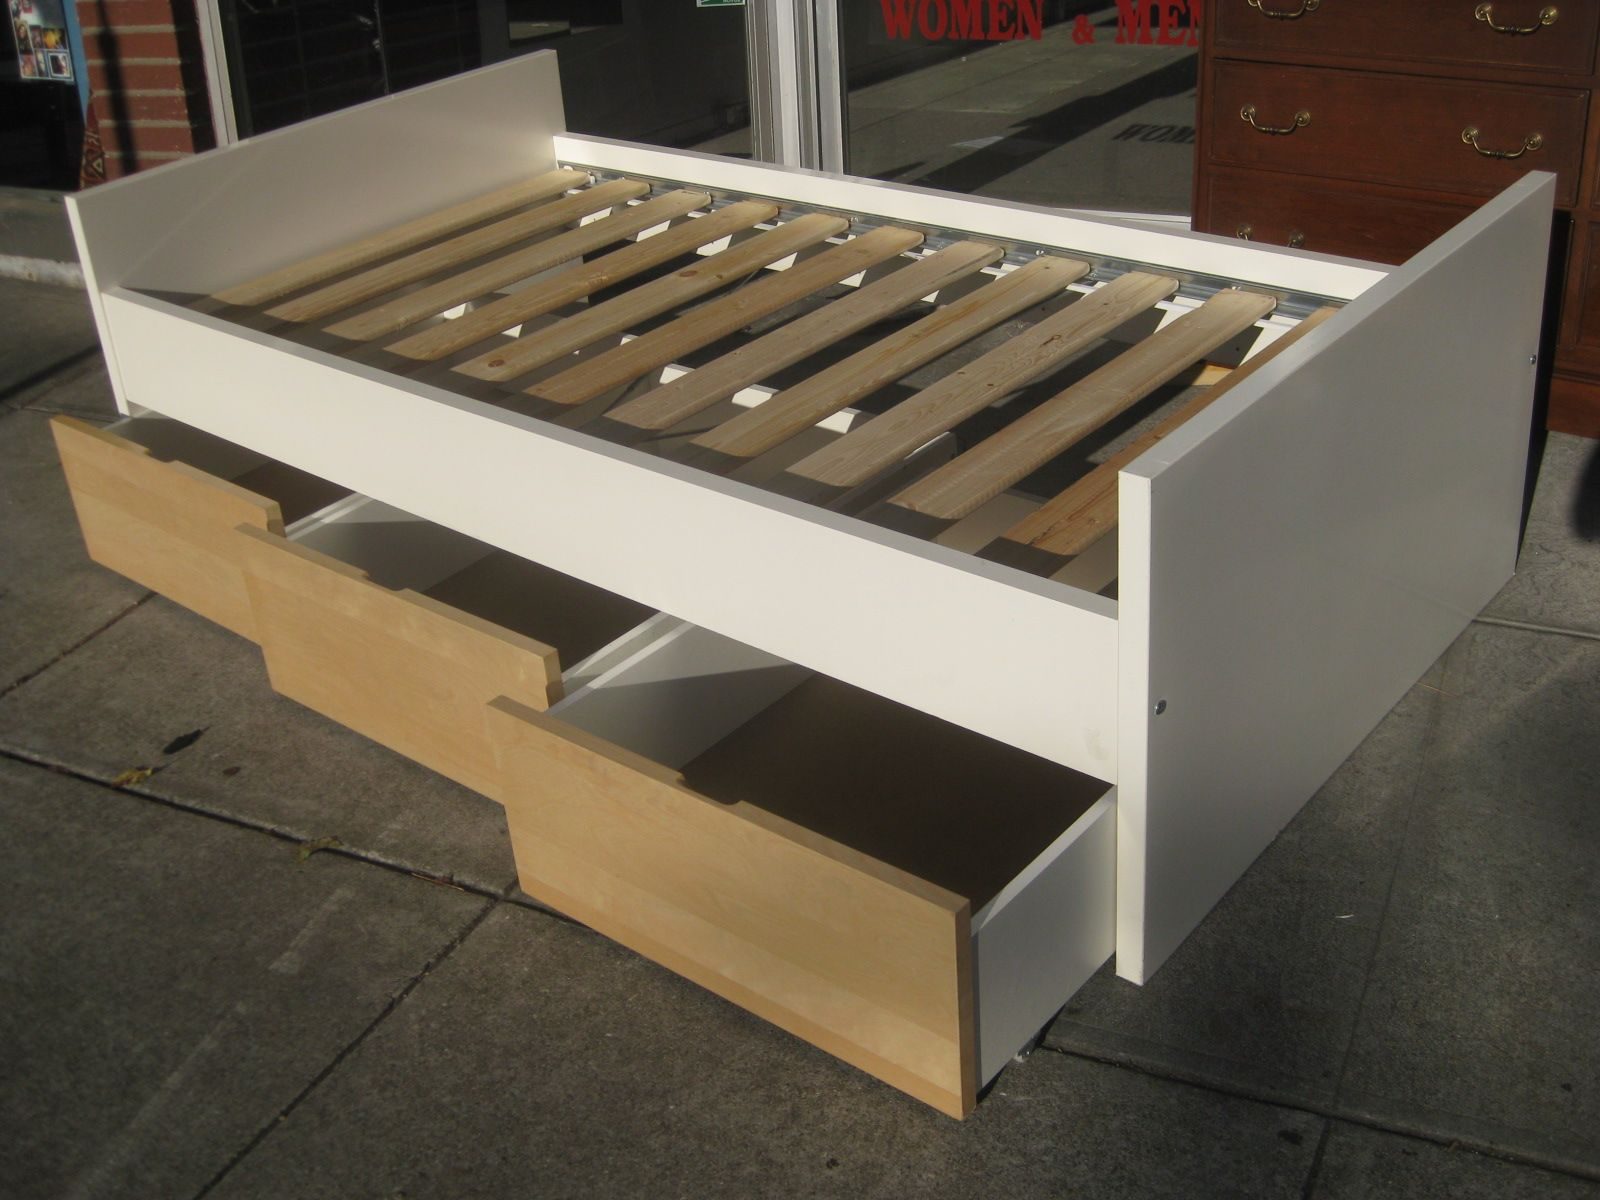 Sculpture Of Beds With Drawers Underneath Bed With Drawers Underneath Bed Frame With Storage Ikea Twin Bed